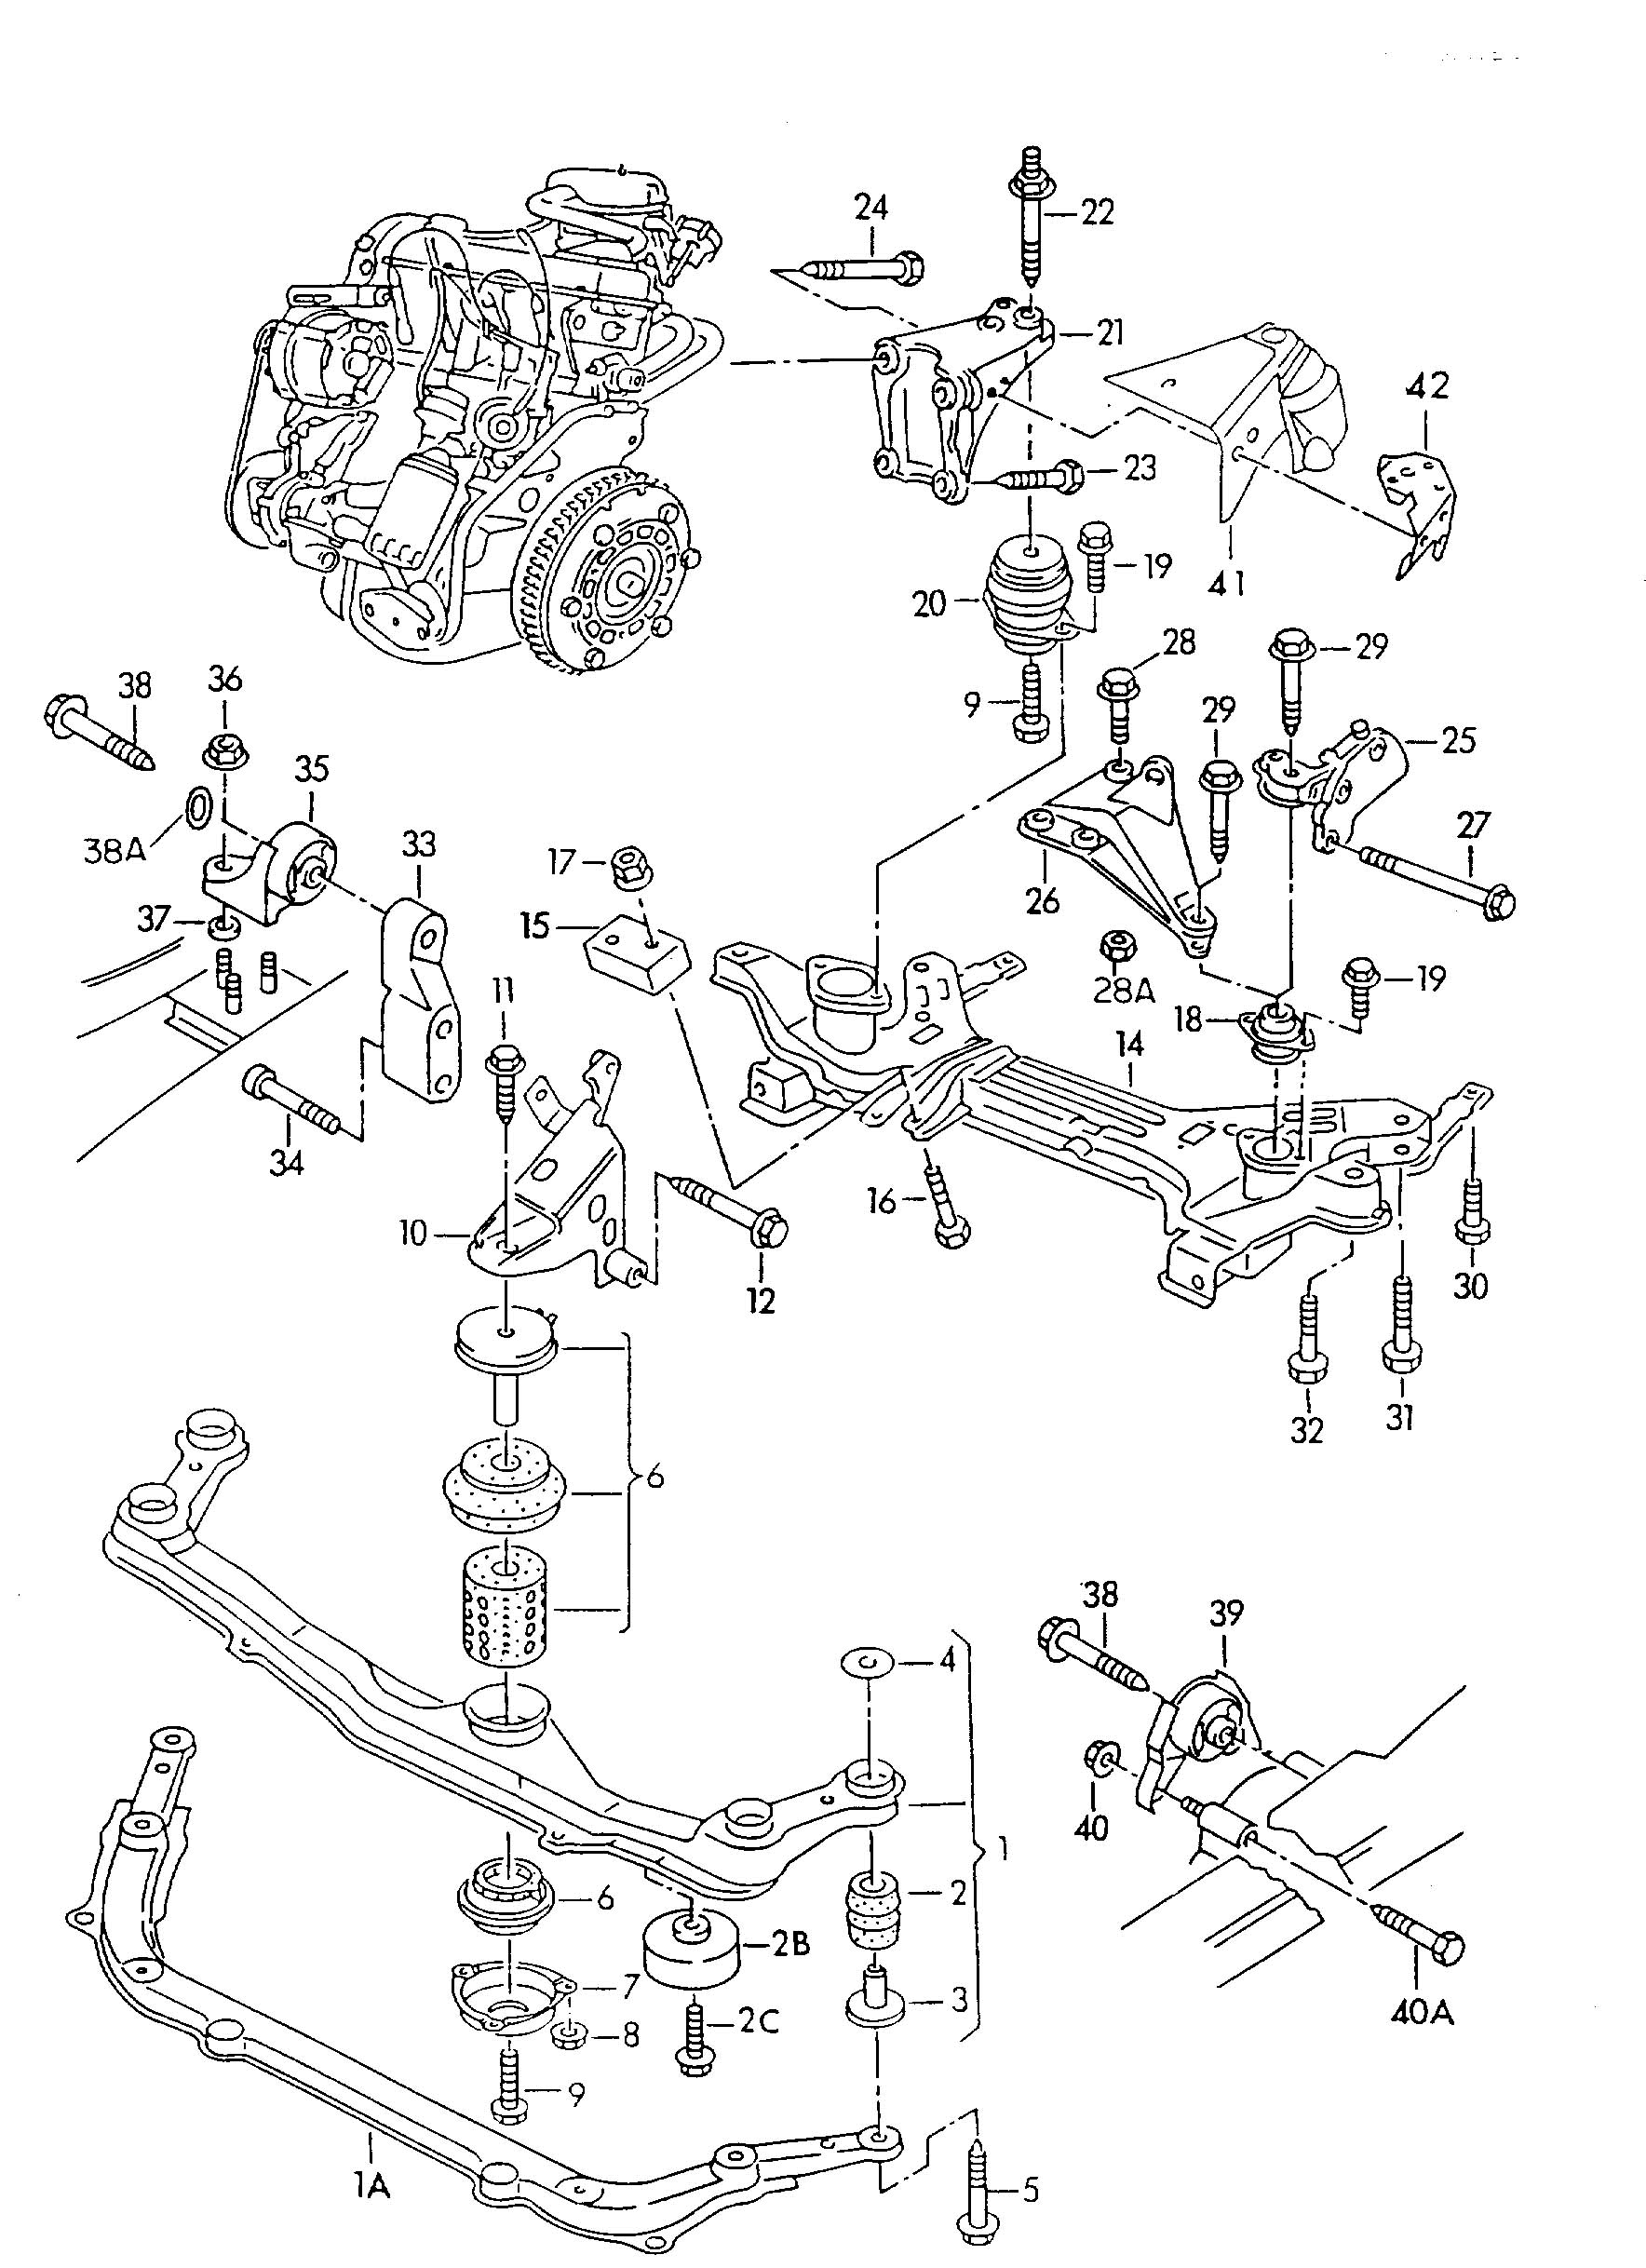 Volkswagen Jetta Coolant System Diagram Within